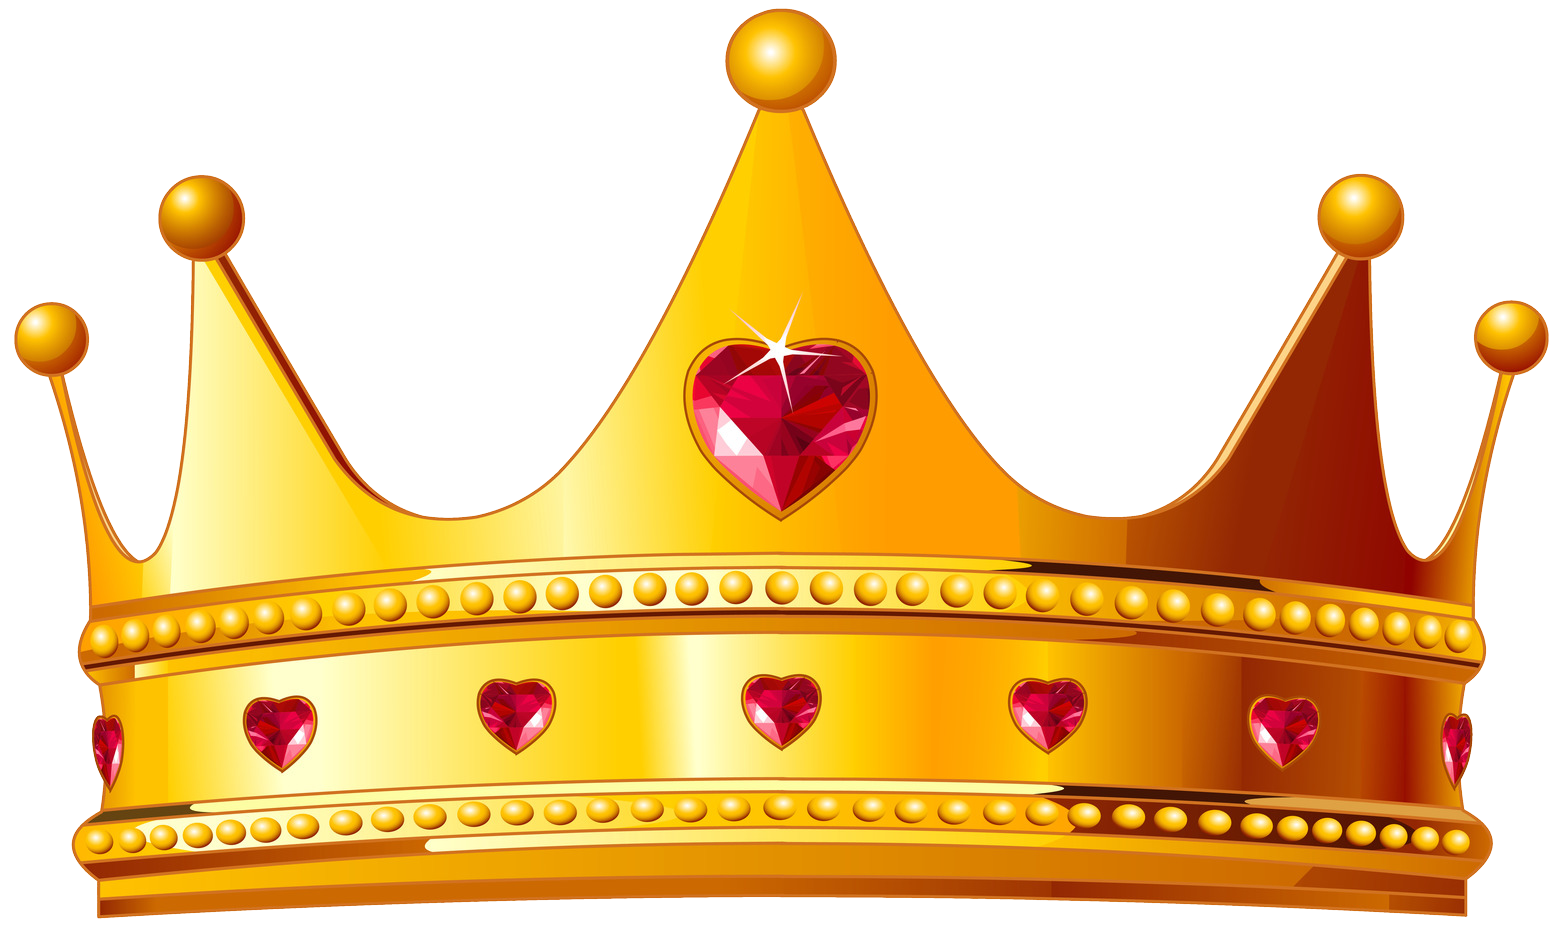 Full Hd Crown Png Transparent Background - Crown PNG HD